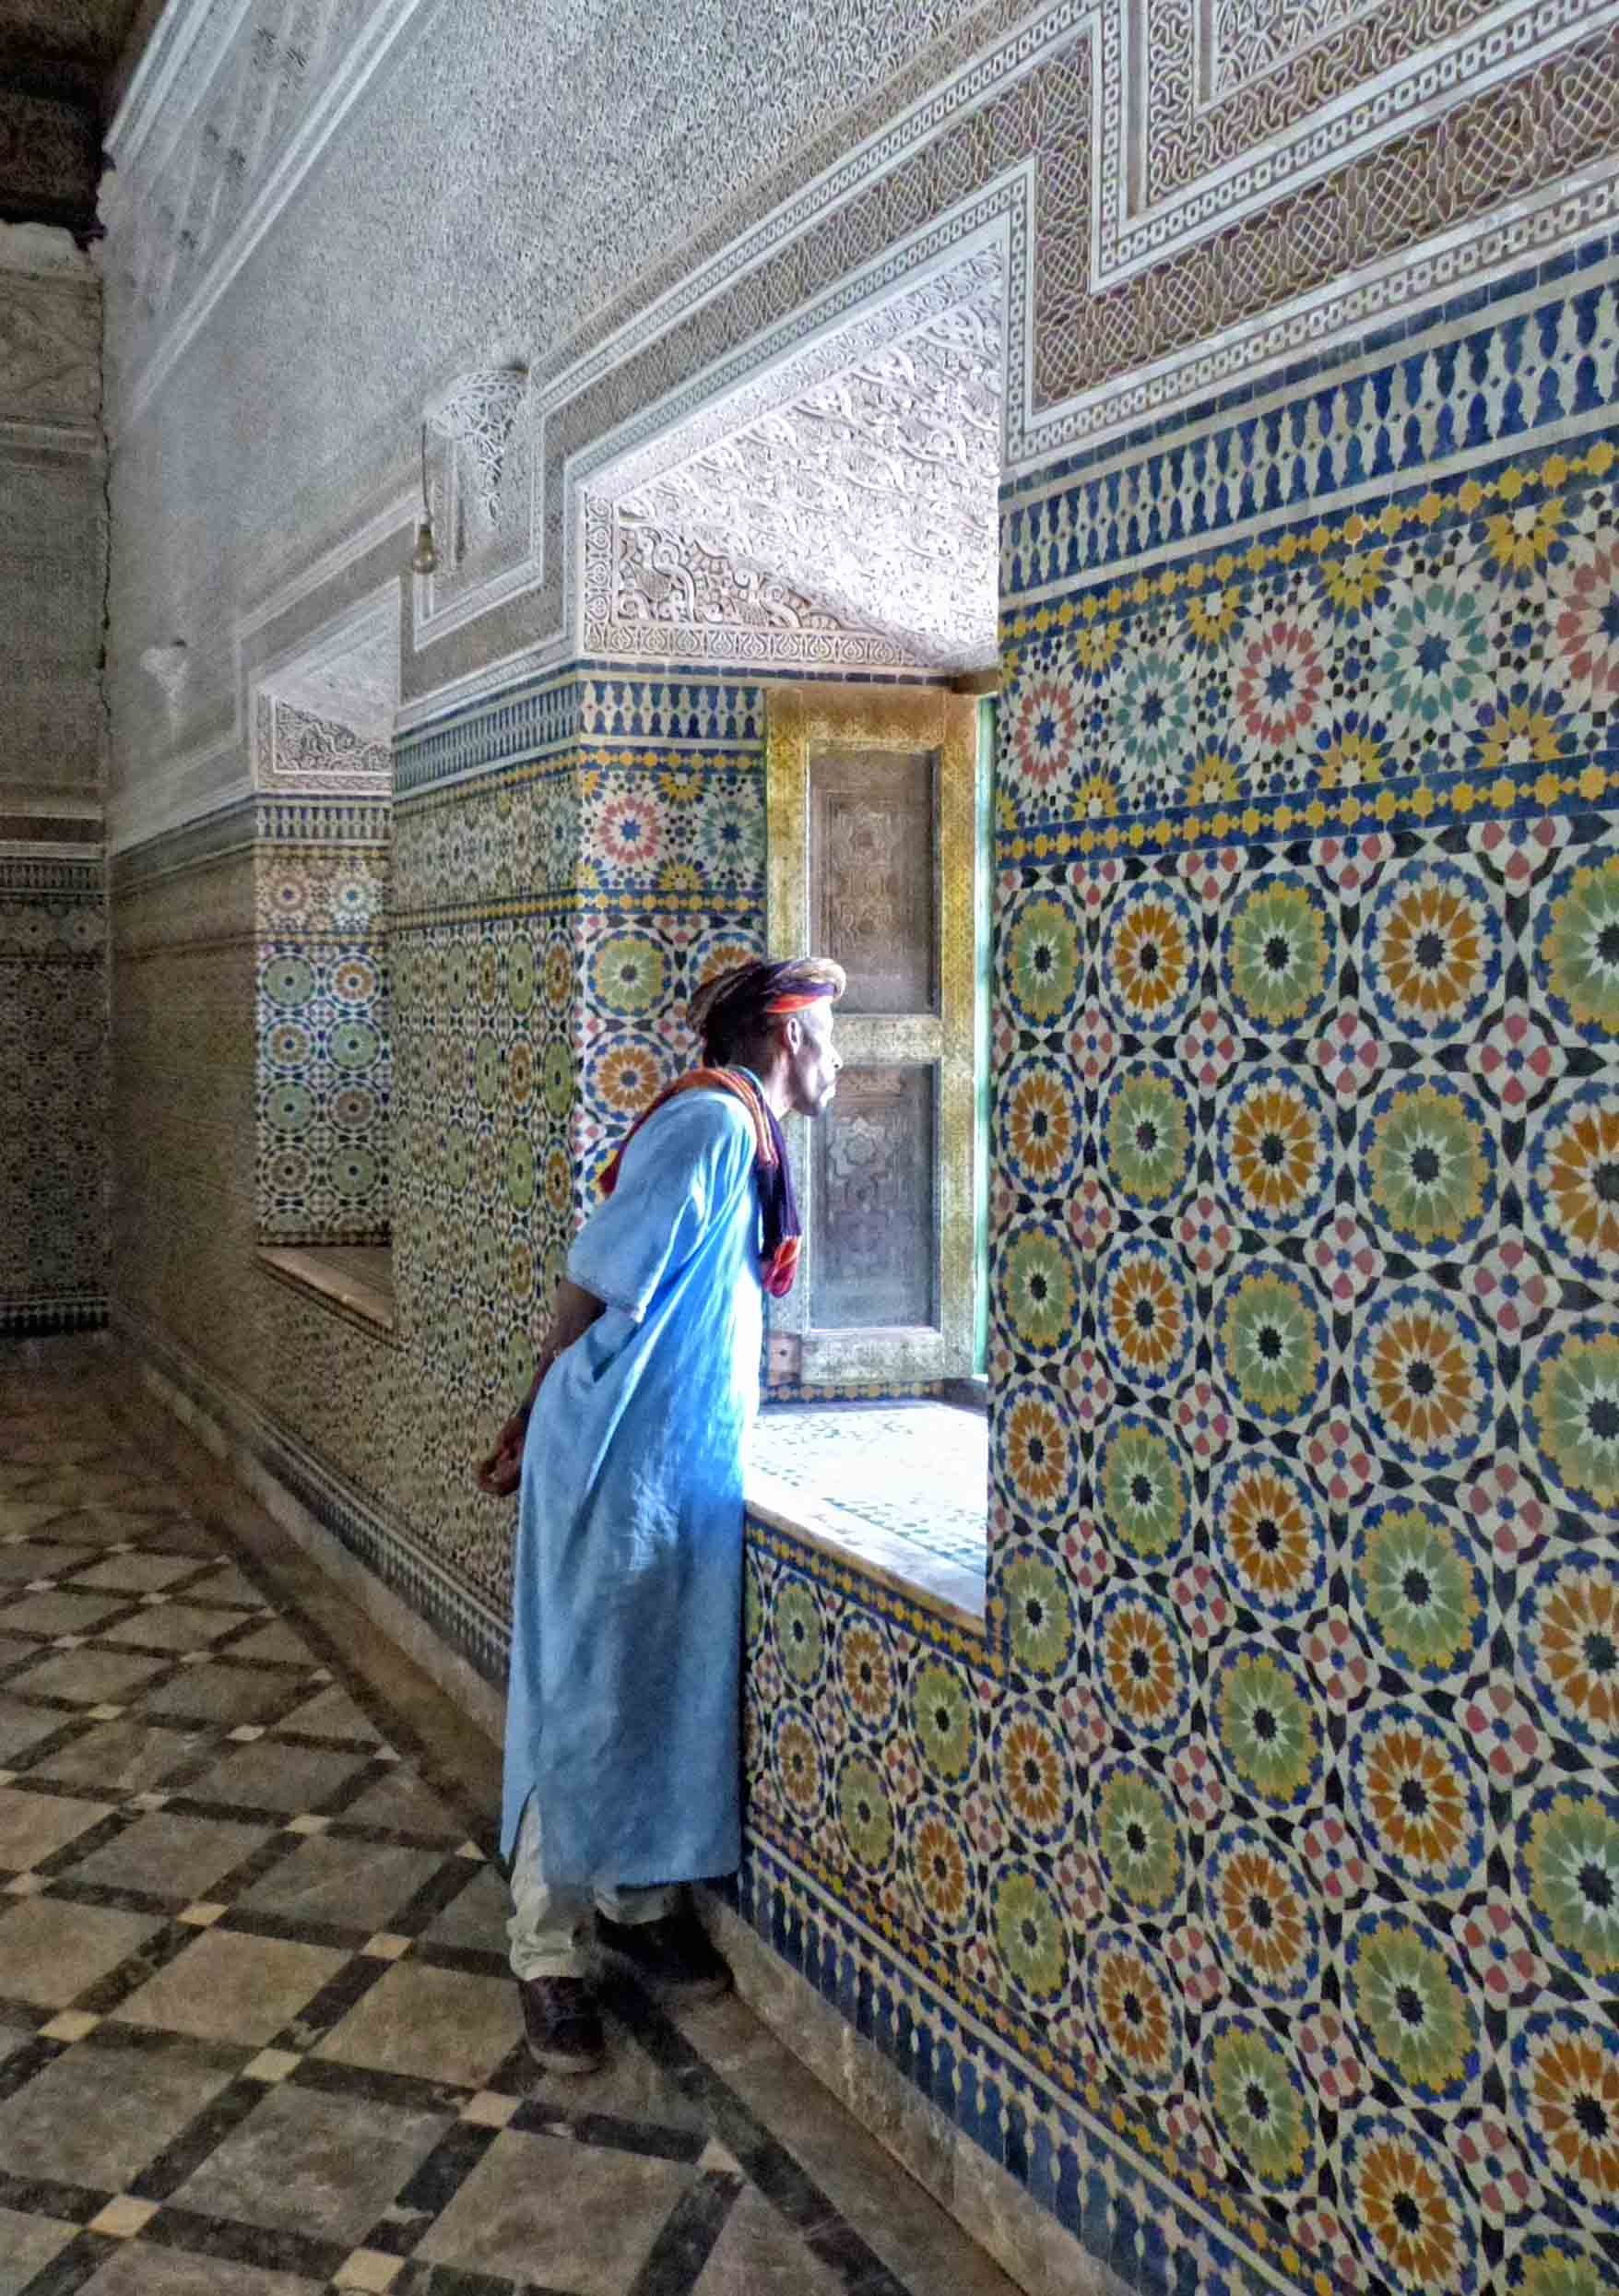 Man in blue robes looking out of window in tiled room